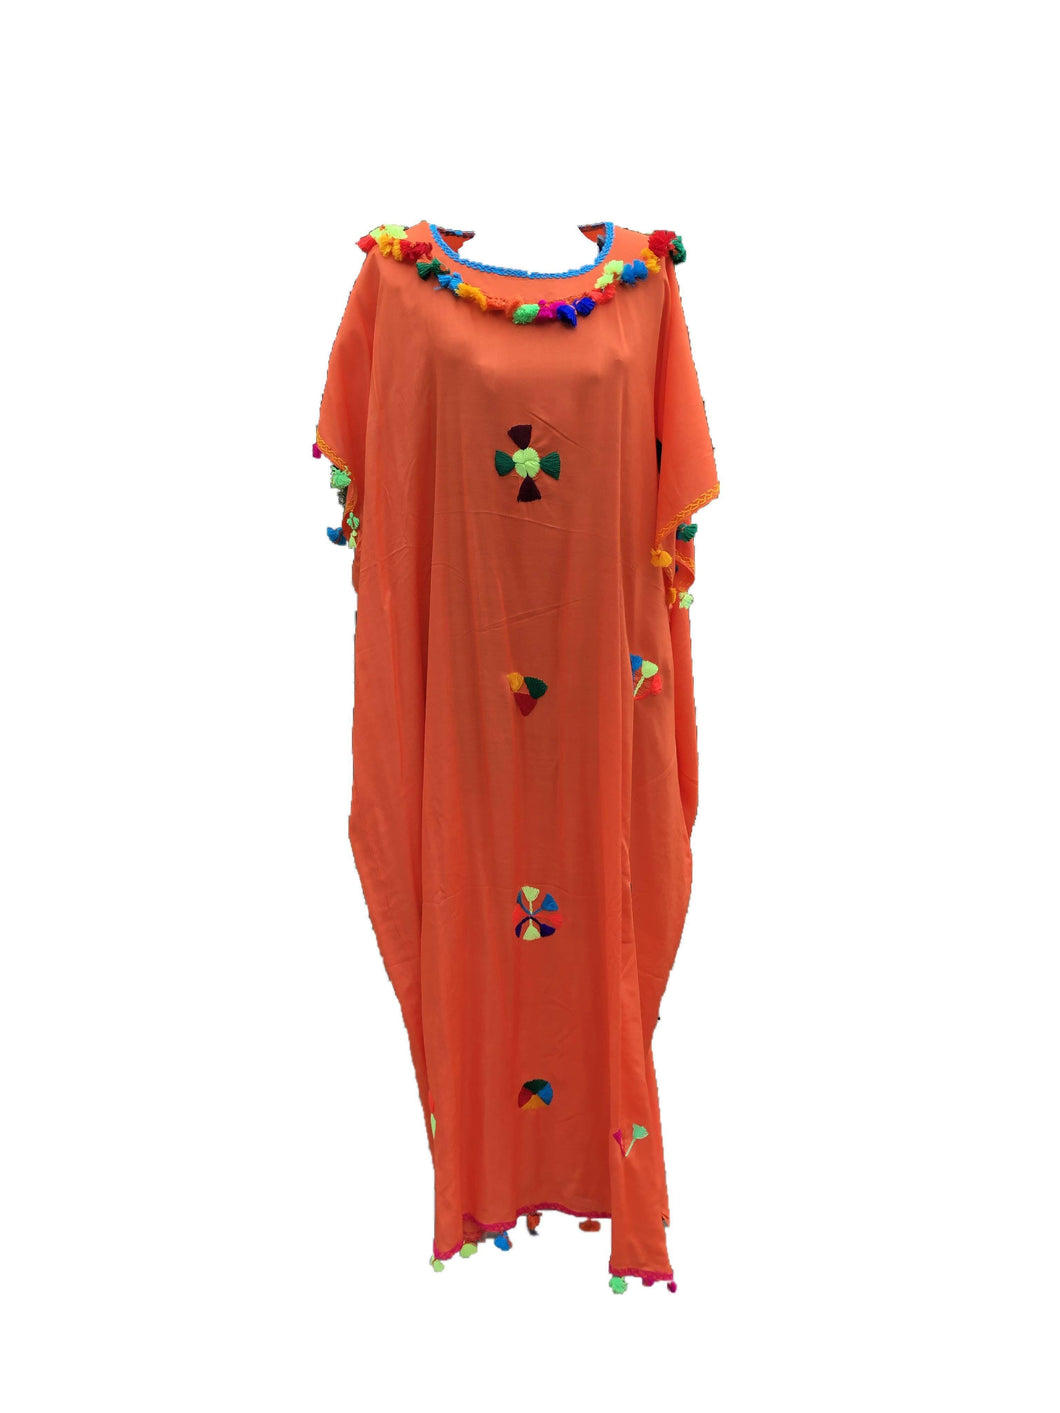 Festive Women's Embroidered Moroccan Lightweight Kaftan Dress with Pompoms - Orange Kaftans